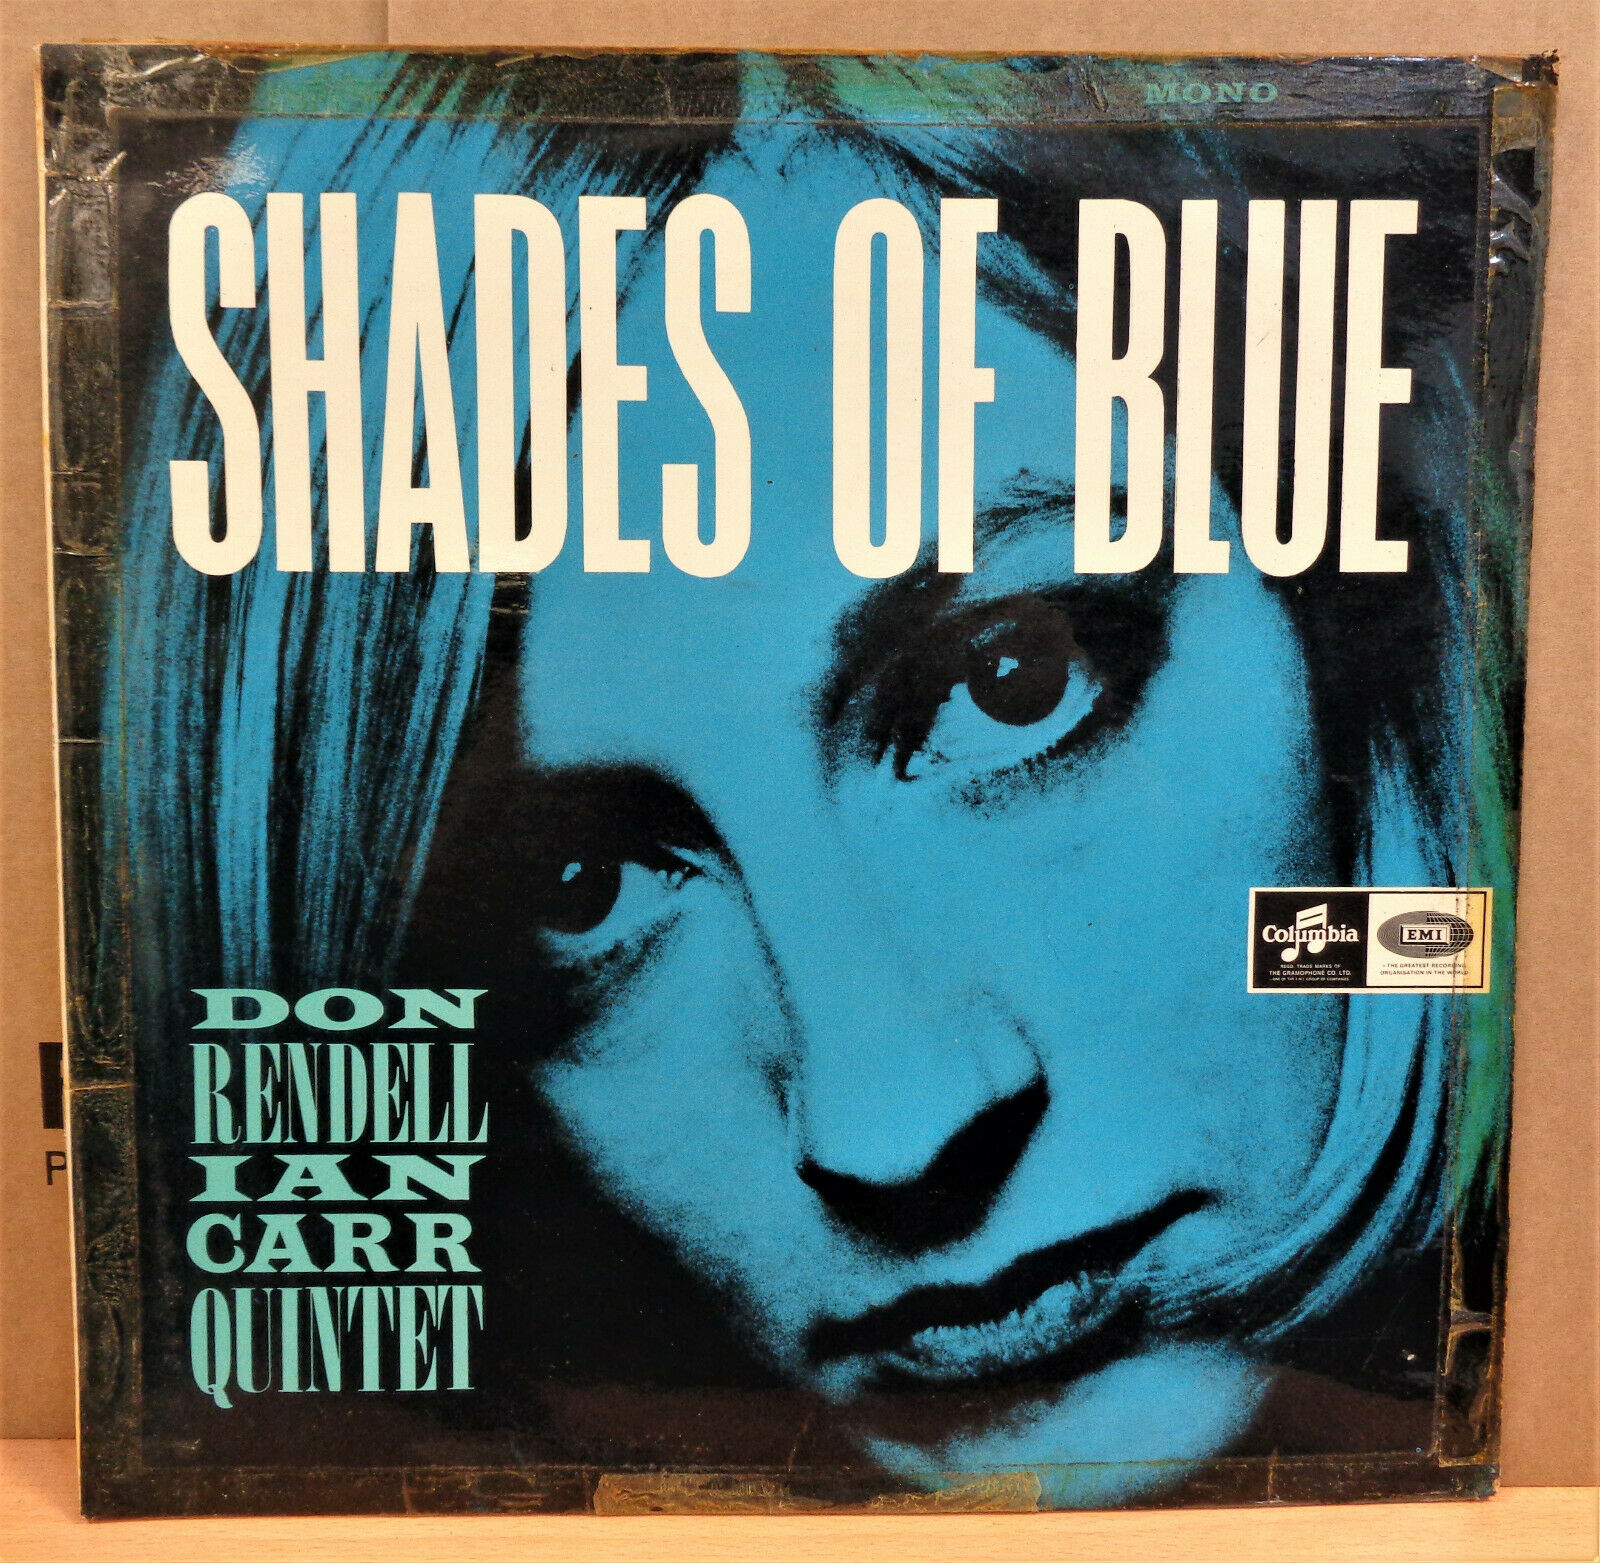 DON RENDELL IAN CARR QUINTET SHADES OF BLUE OG UK MONO COLUMBIA LP SX1733 CLIP